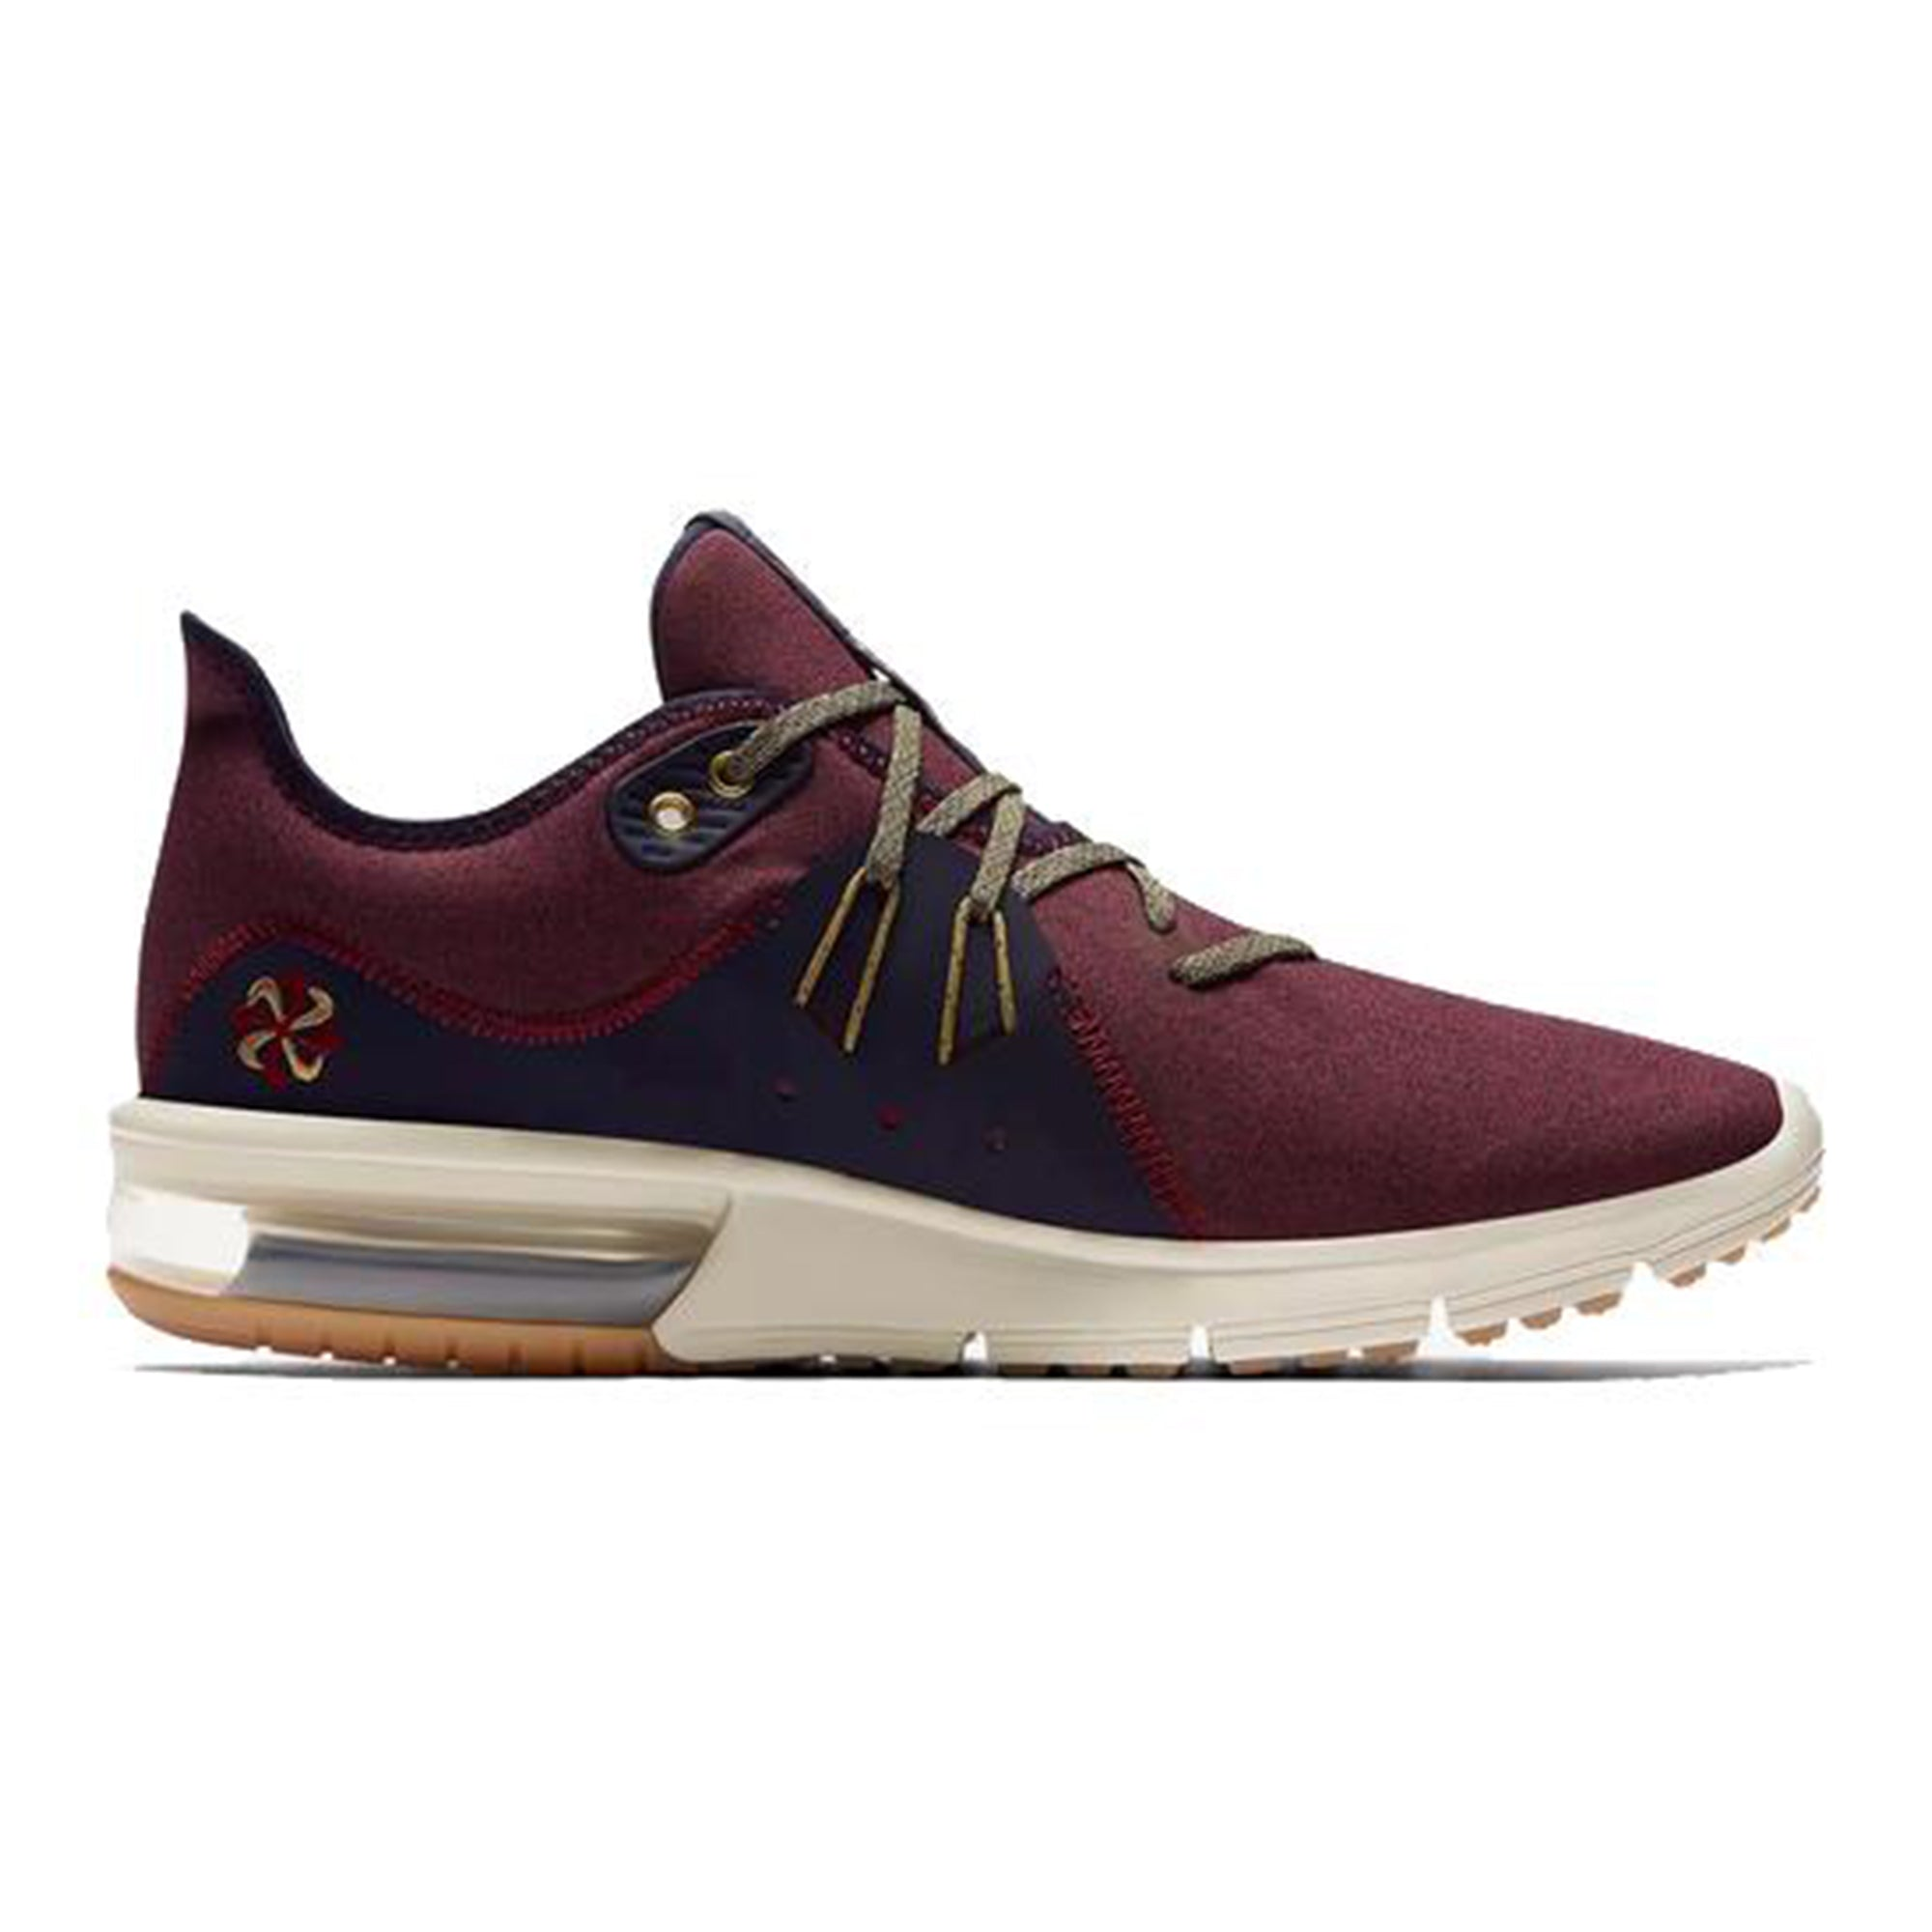 ... singapore 650b3 e2145  sweden buy nike men air max sequent 3 running  shoe red crush wheat gold blackened blue 5bec026ca